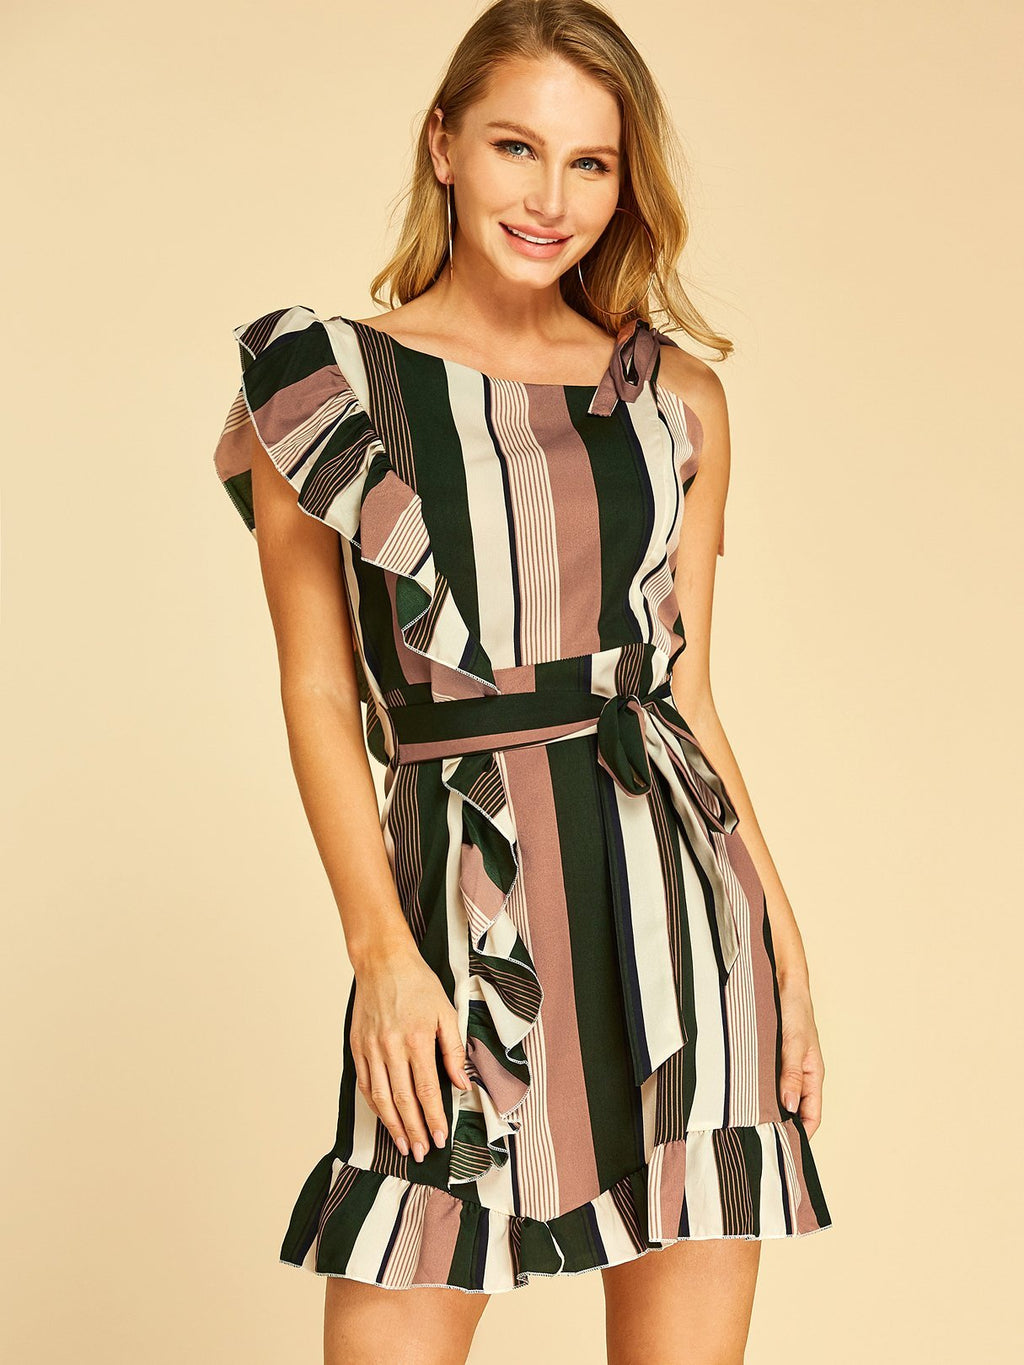 Color Block Ruffle Trim Self-tie Design Sleeveless Dress